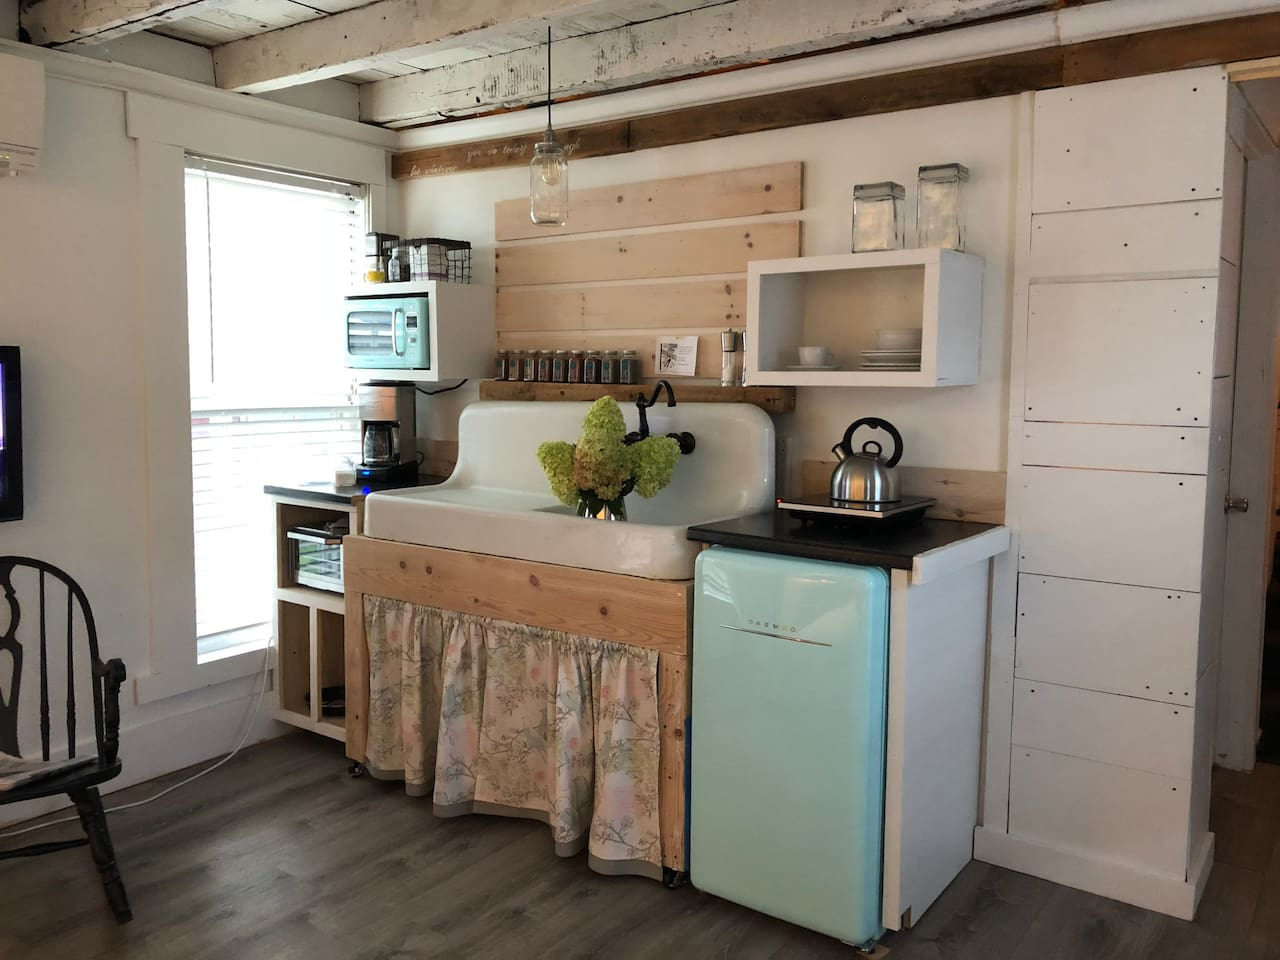 Kitchenette with functional antique farm sink.